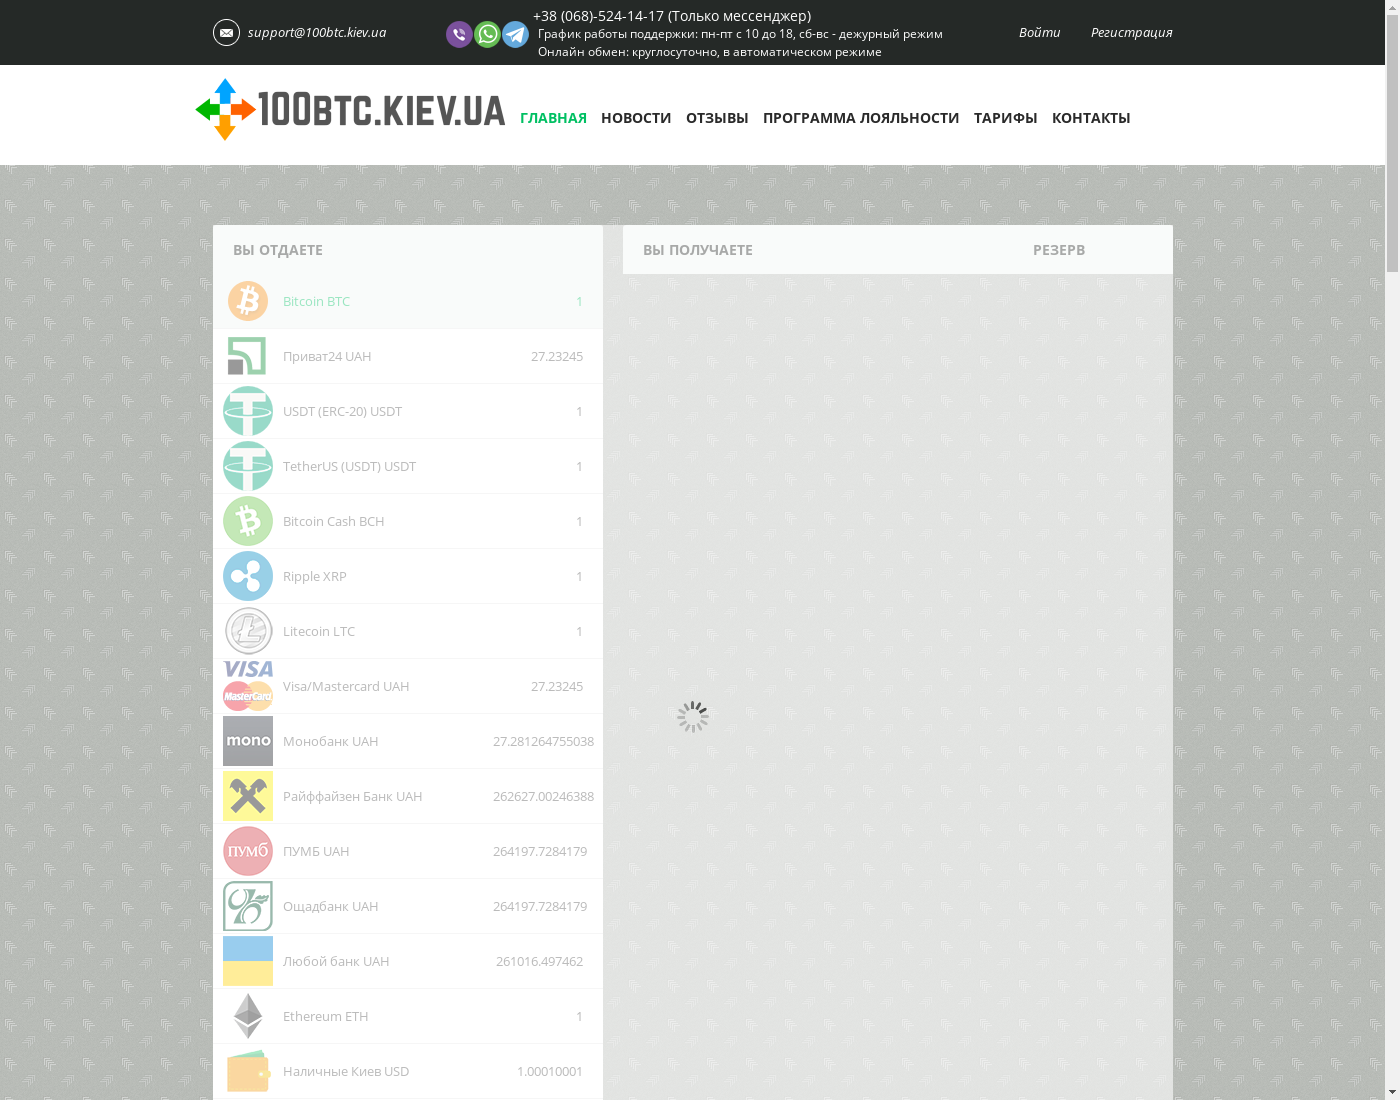 100BTC.kiev user interface: the home page in English